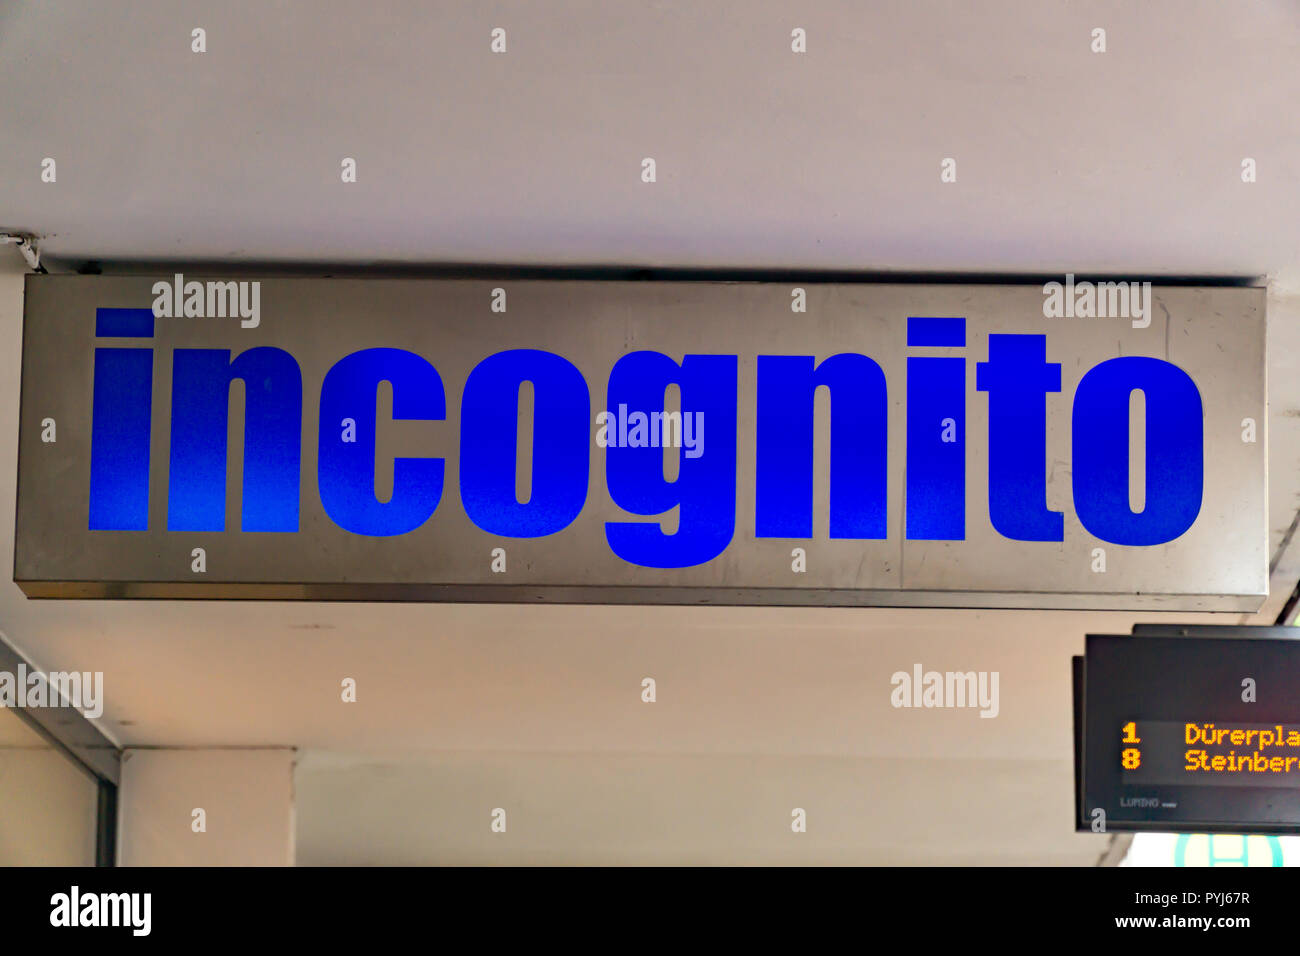 Wiesbaden, Germany - June 03 2018: INCOGNITO logo on a facade. INCOGNITO fashion store in Wiesbaden,Germany. - Stock Image